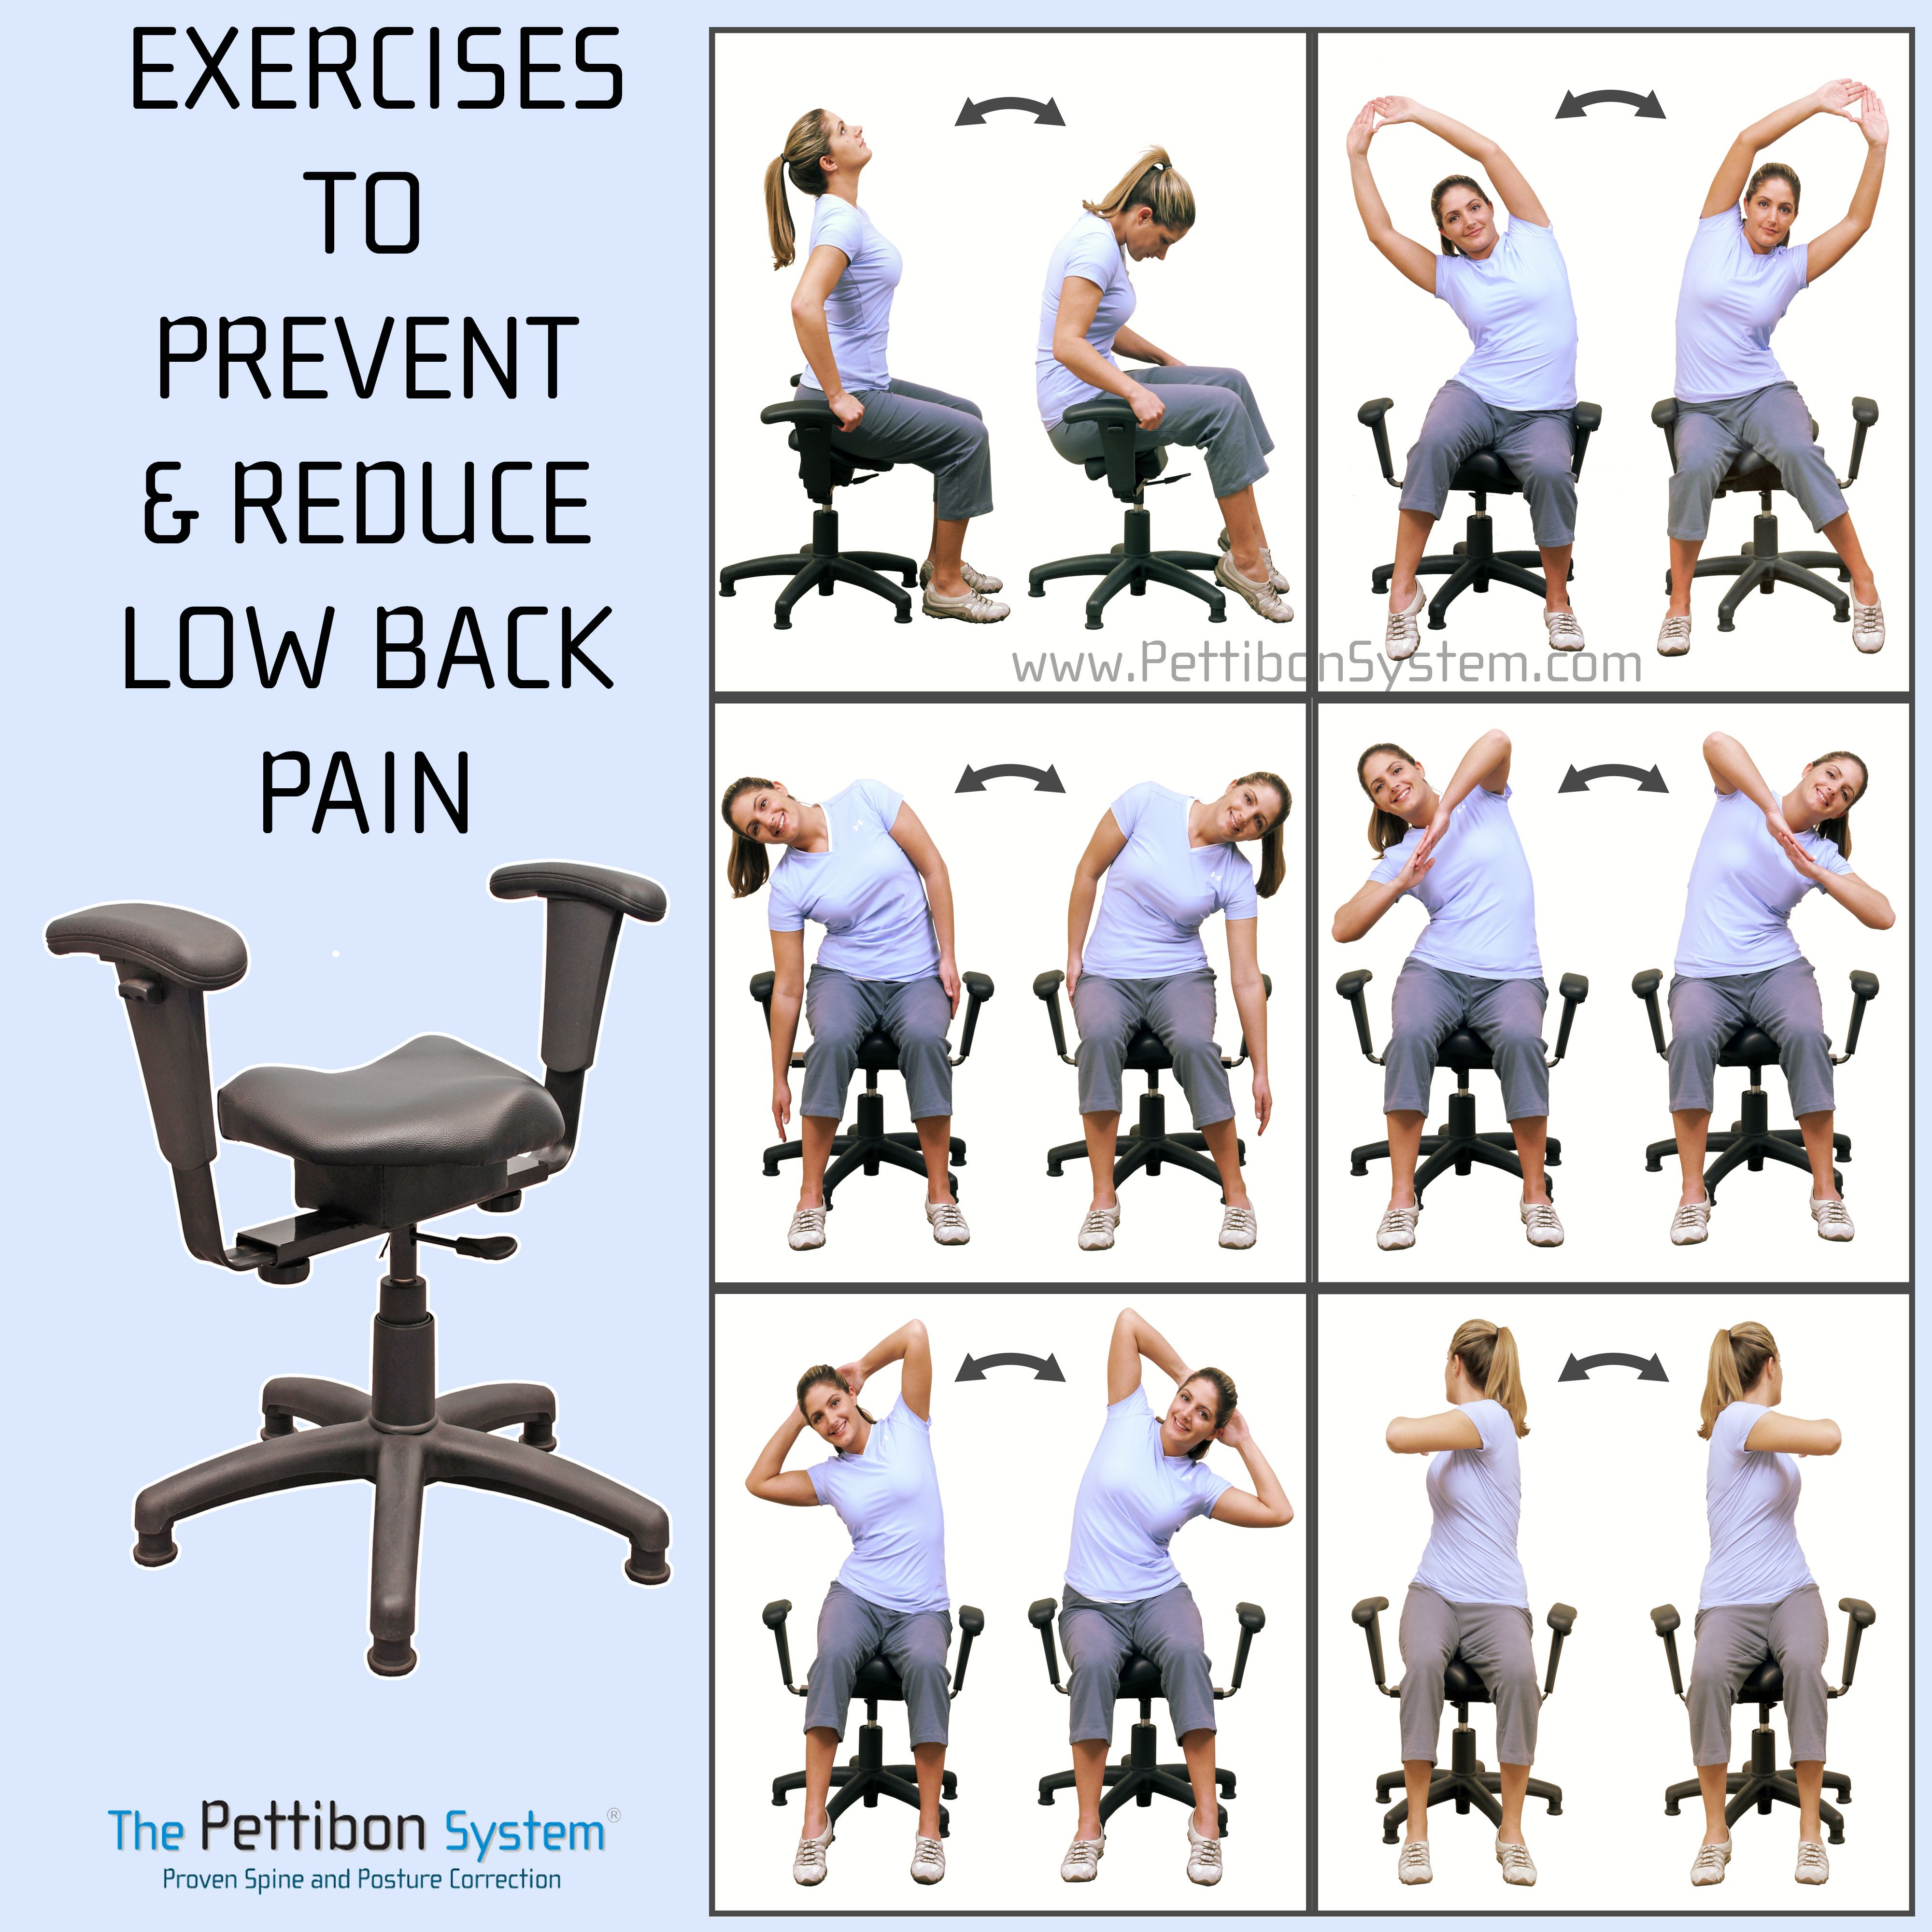 chiropractic wobble chair swivel keeps sinking amazing stretches for back pain relief the